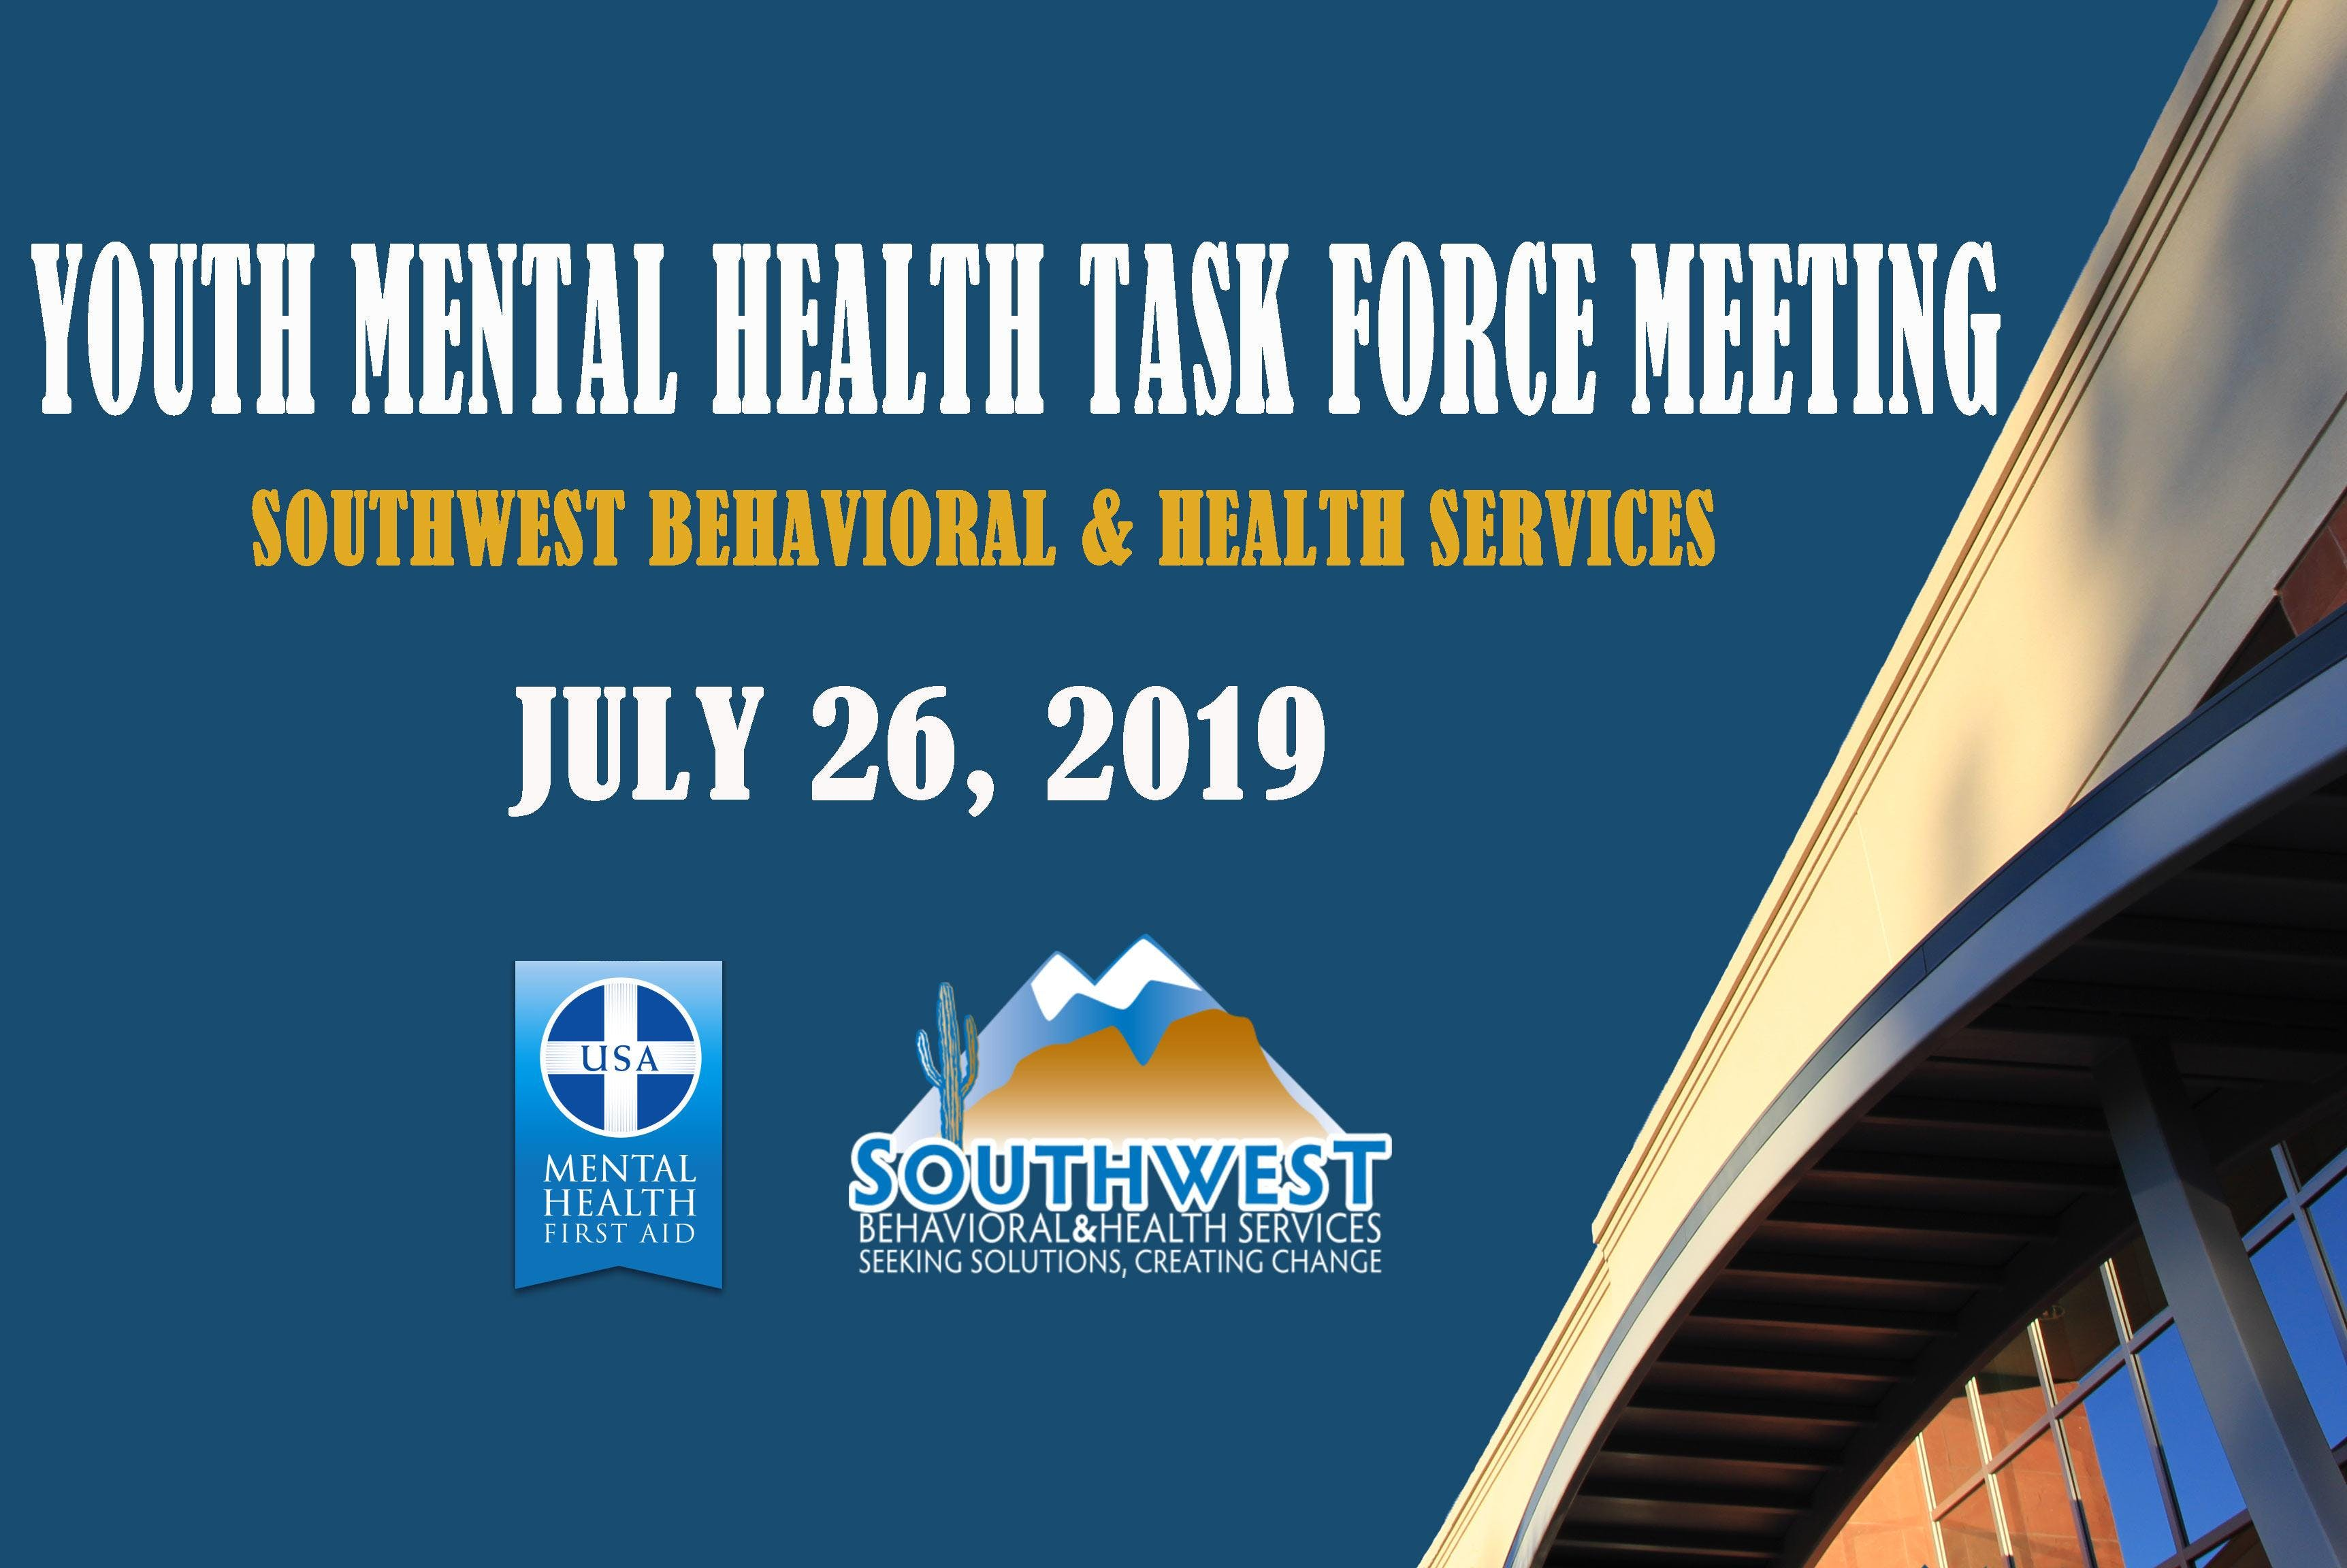 Youth Mental Health Task Force Meeting - July 26th